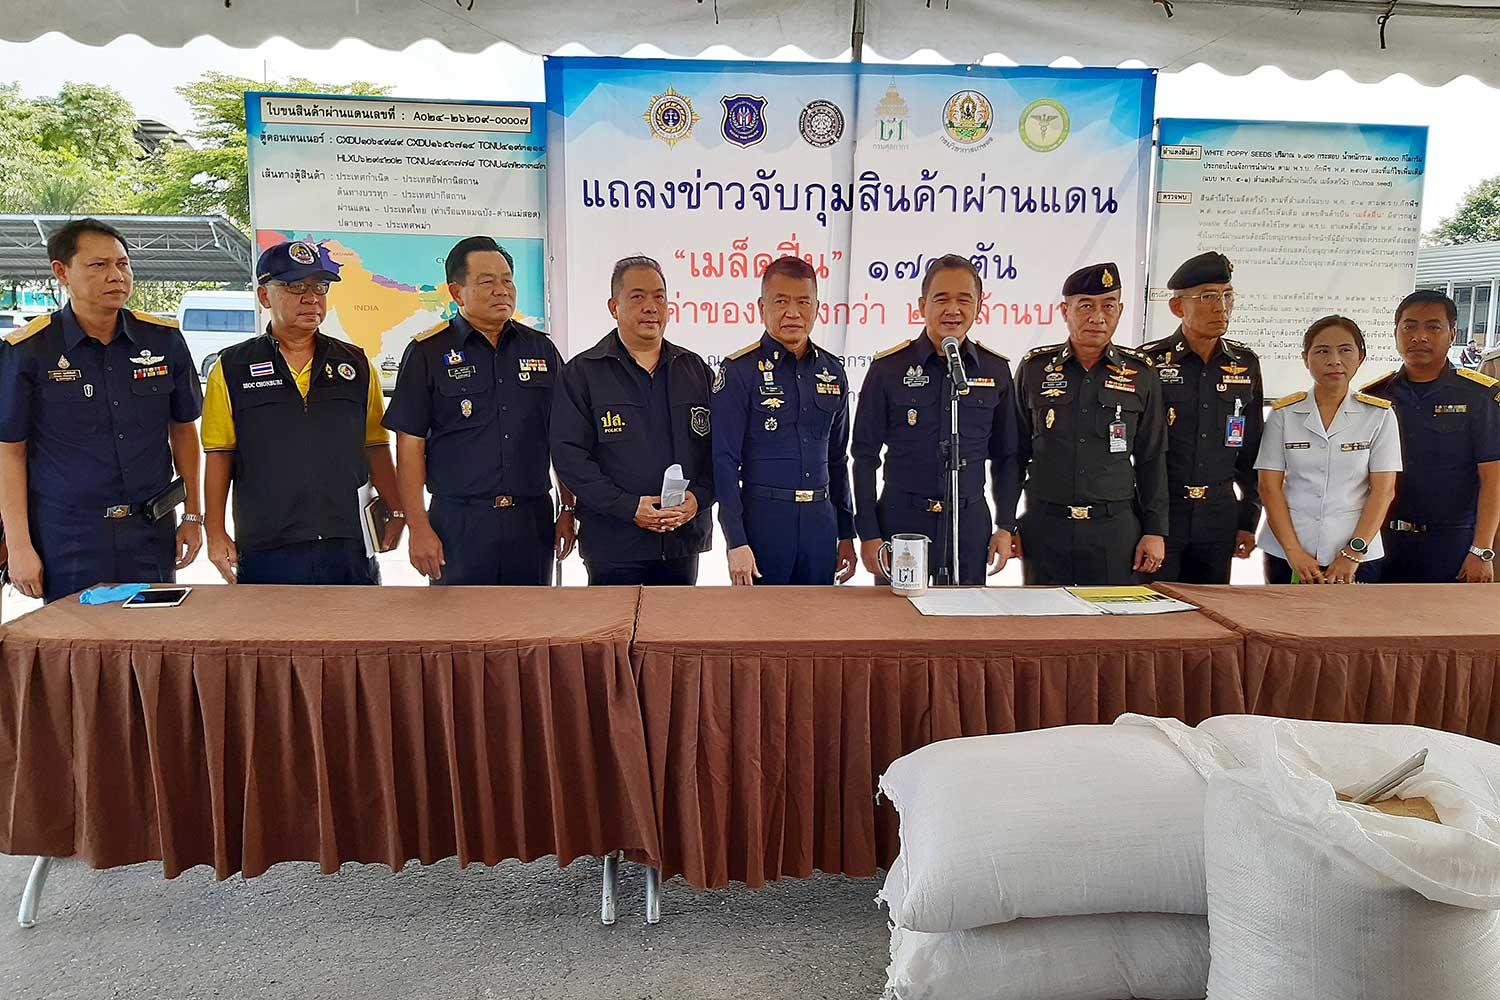 170 tonnes of opium poppy seeds seized in Pattaya